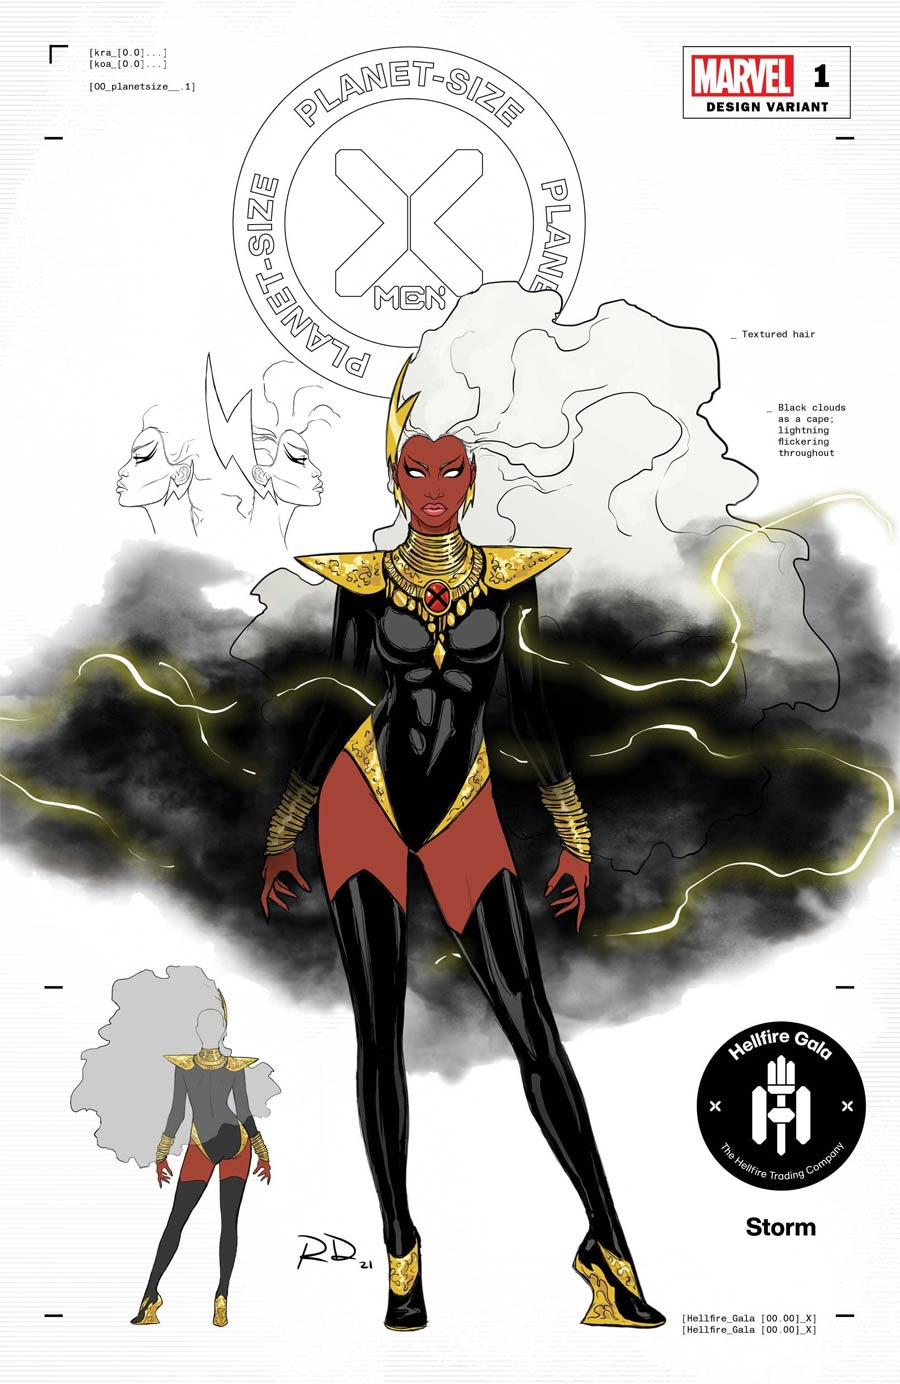 Planet-Size X-Men #1 (One Shot) Cover G Incentive Russell Dauterman Storm Character Design Variant Cover (Hellfire Gala Tie-In)